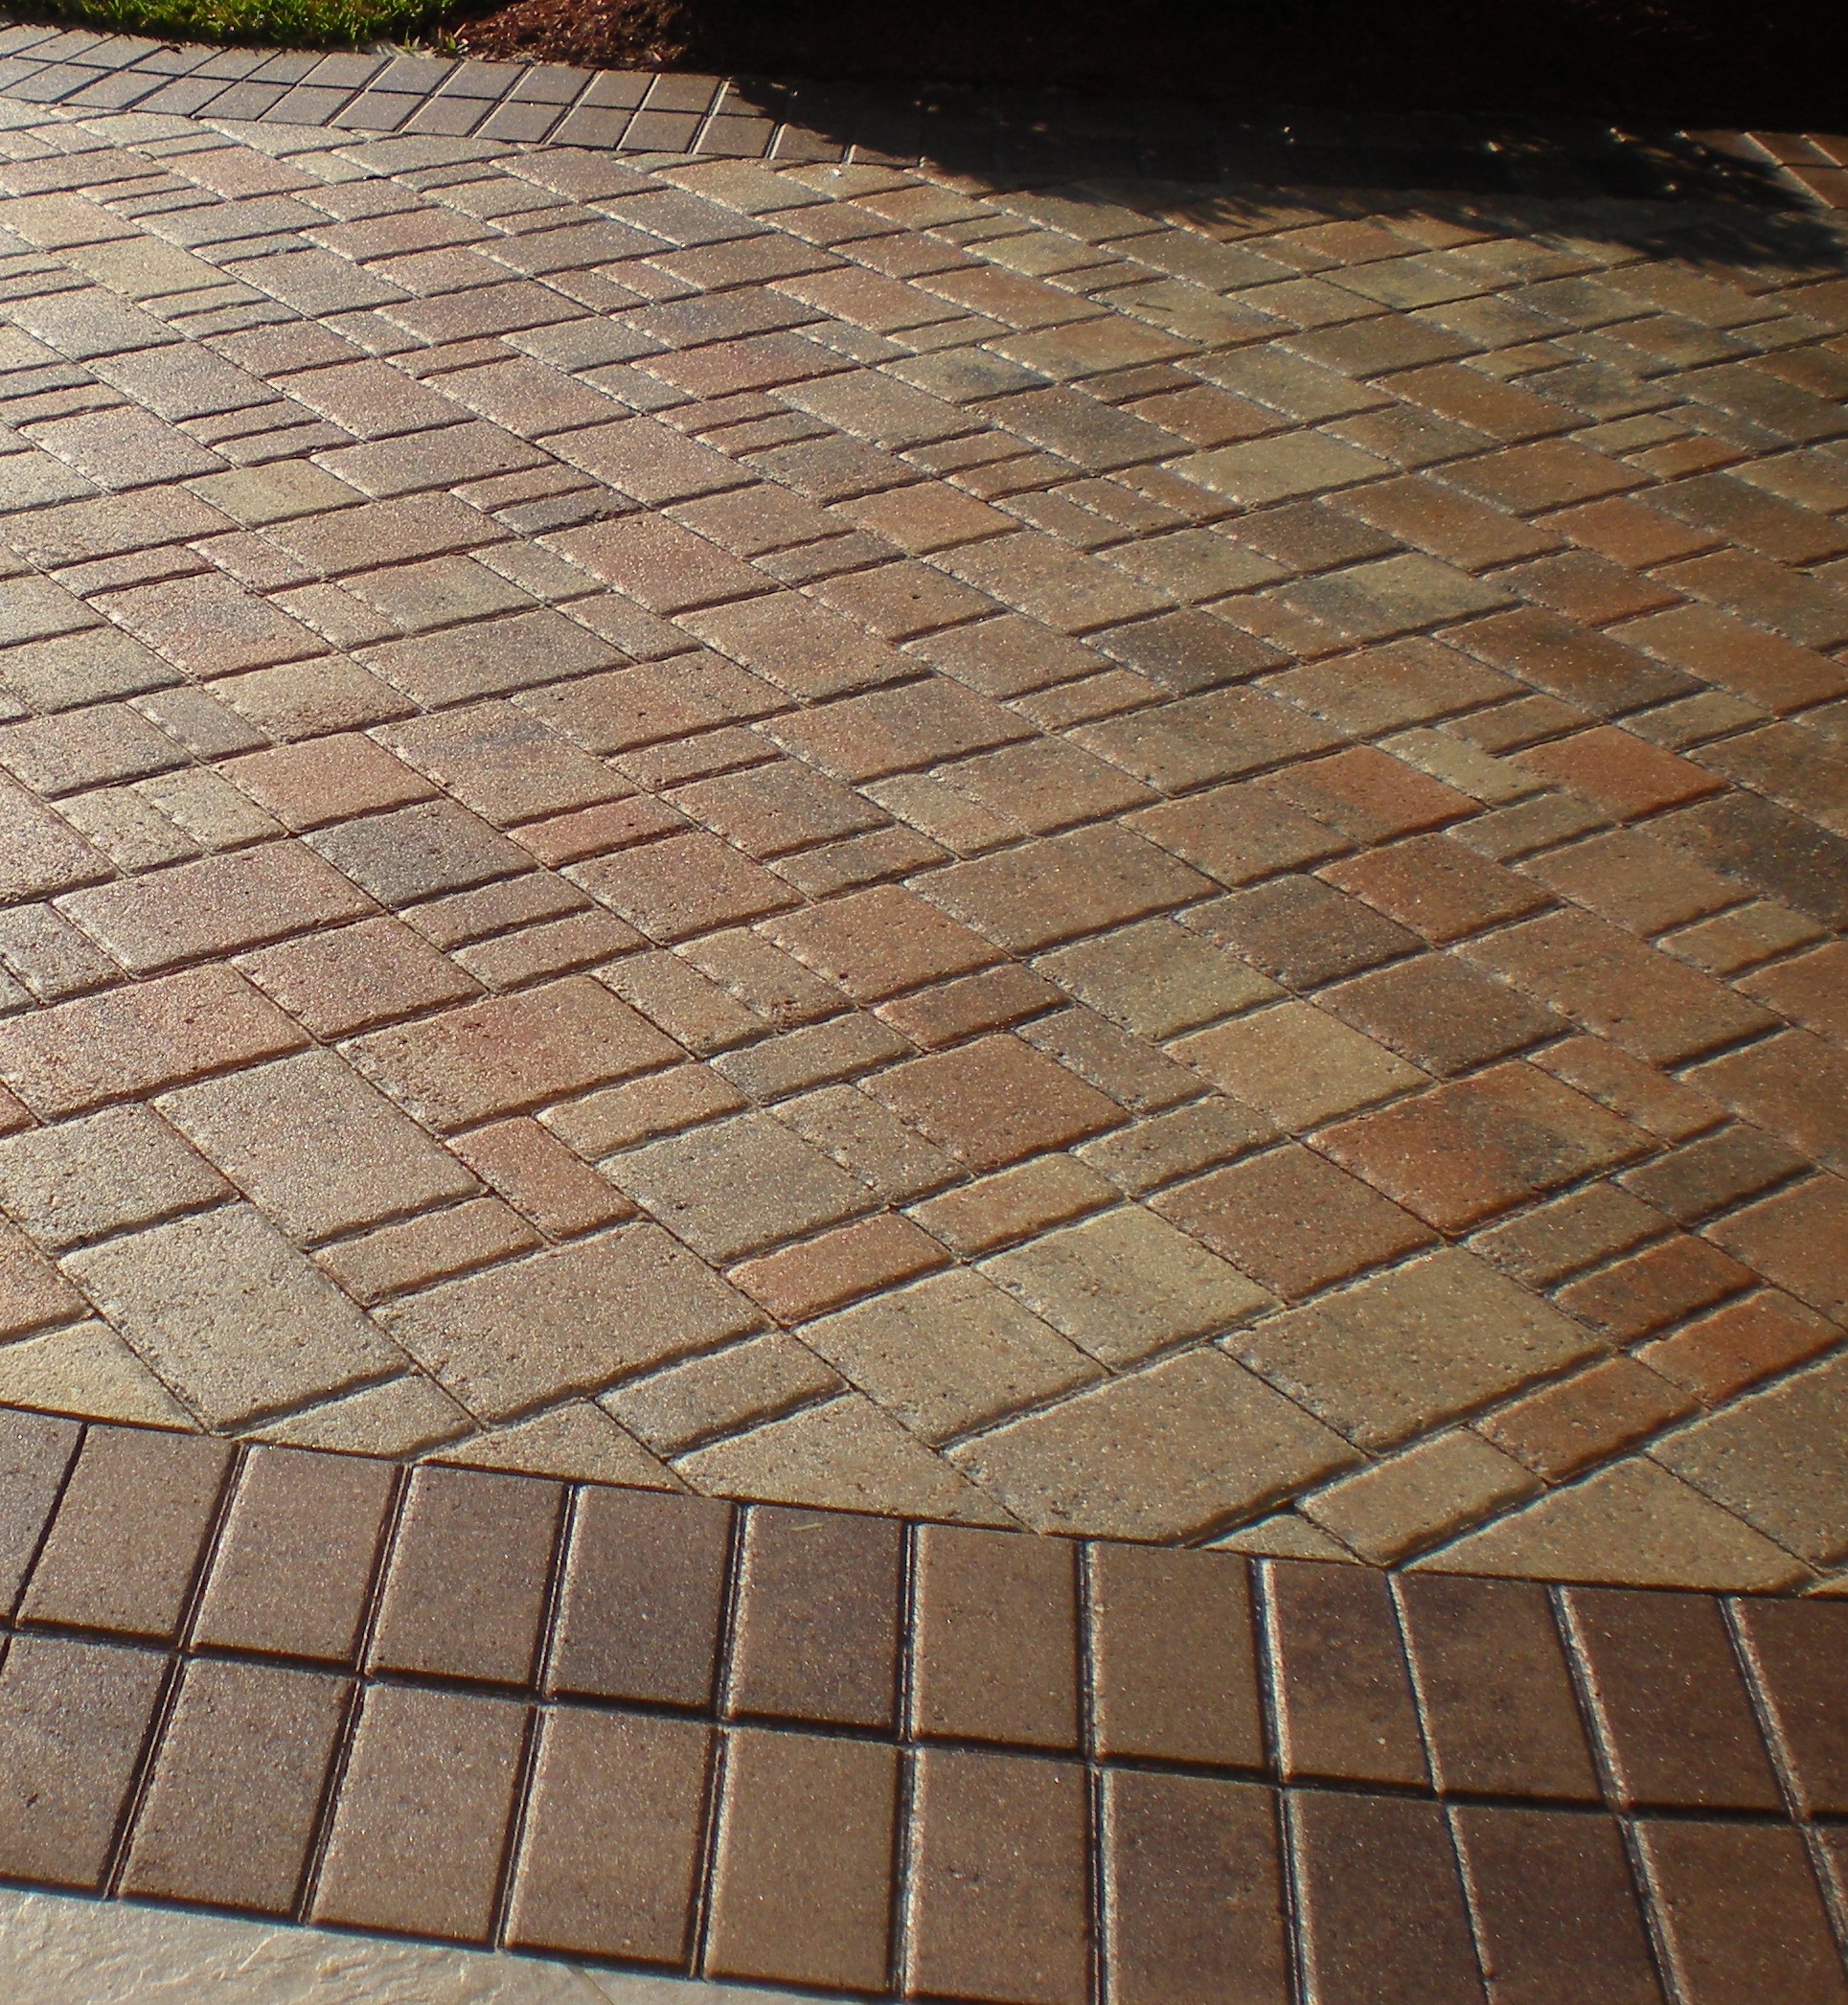 Interlocking Brick Pavers Gorgeous Paver Driveway Sealing For Travertine Interlocking Brick And